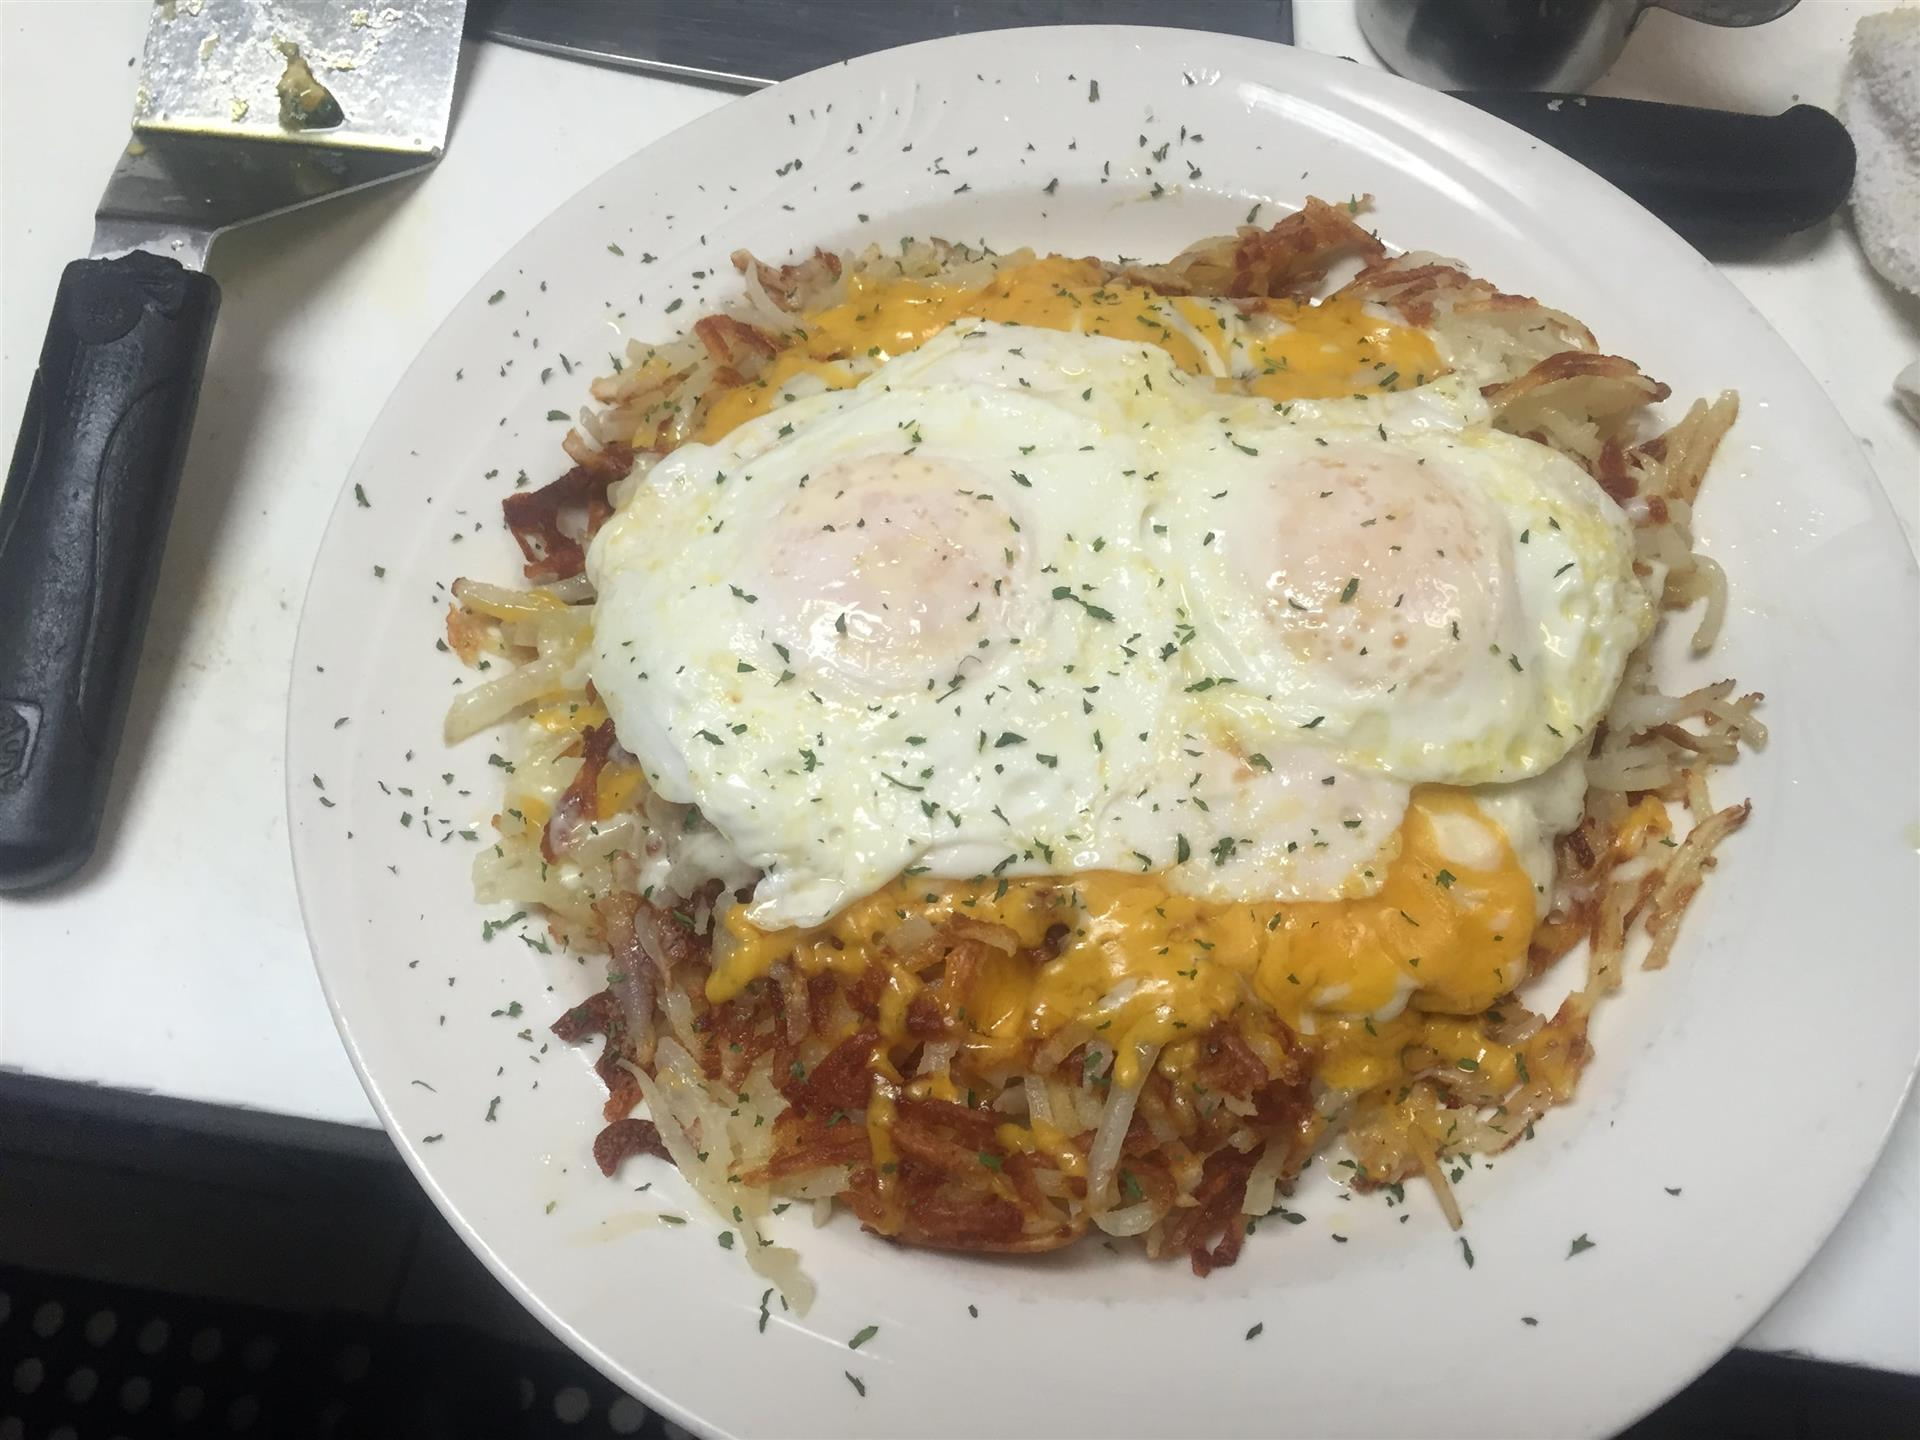 Over Medium Eggs over hashbrowns and cheese on a white plate